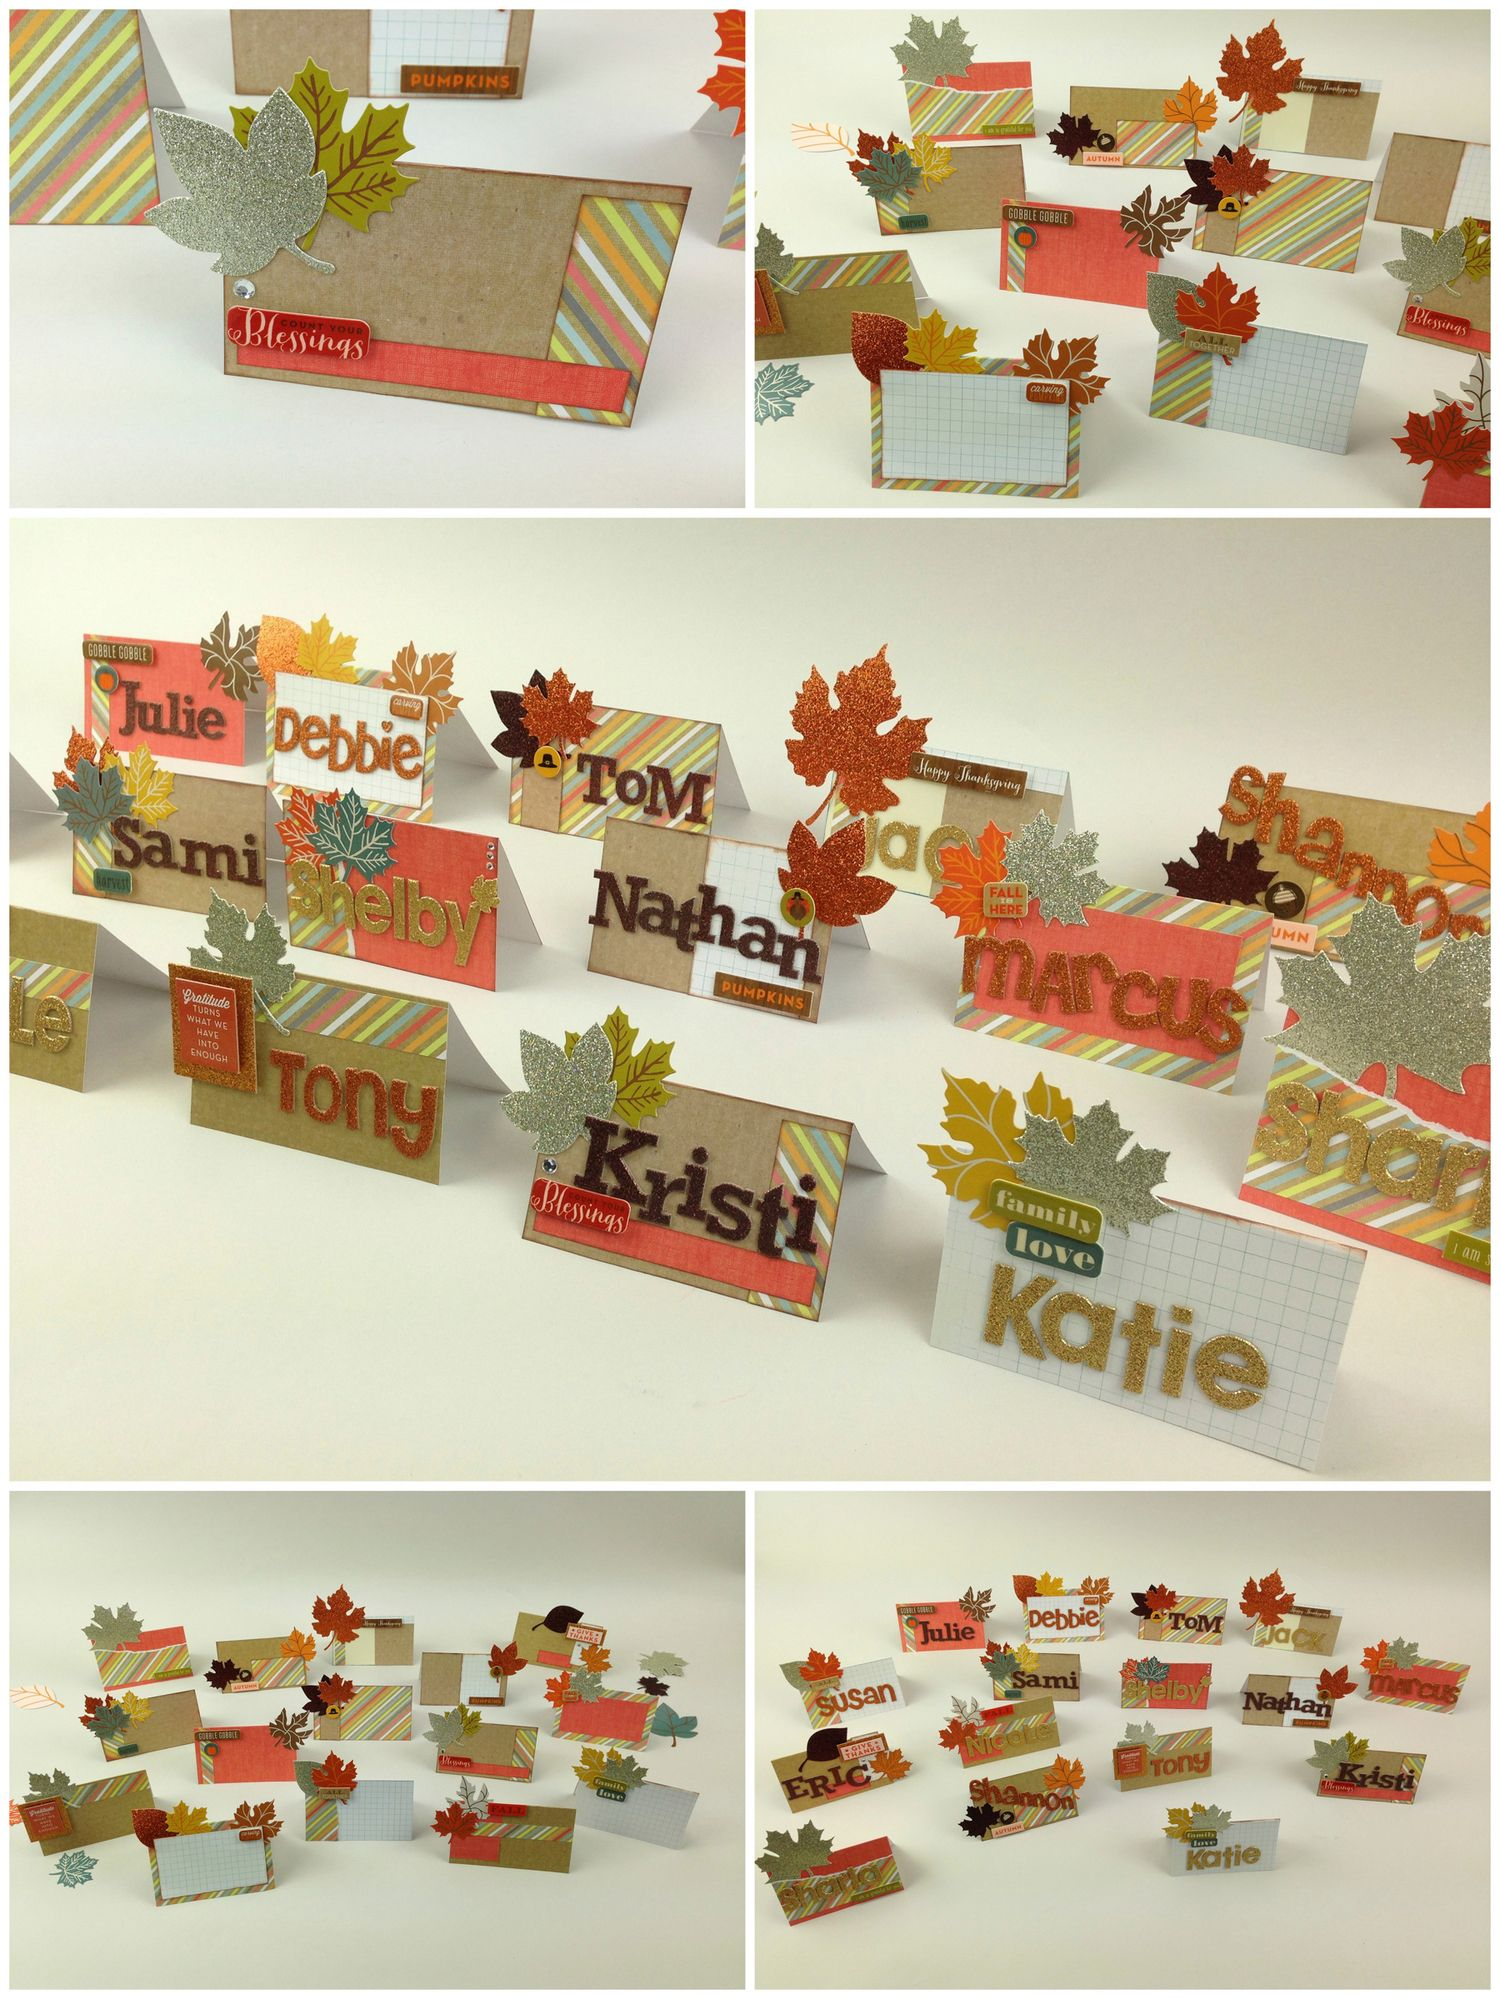 Paper thanksgiving decorations - photo#35